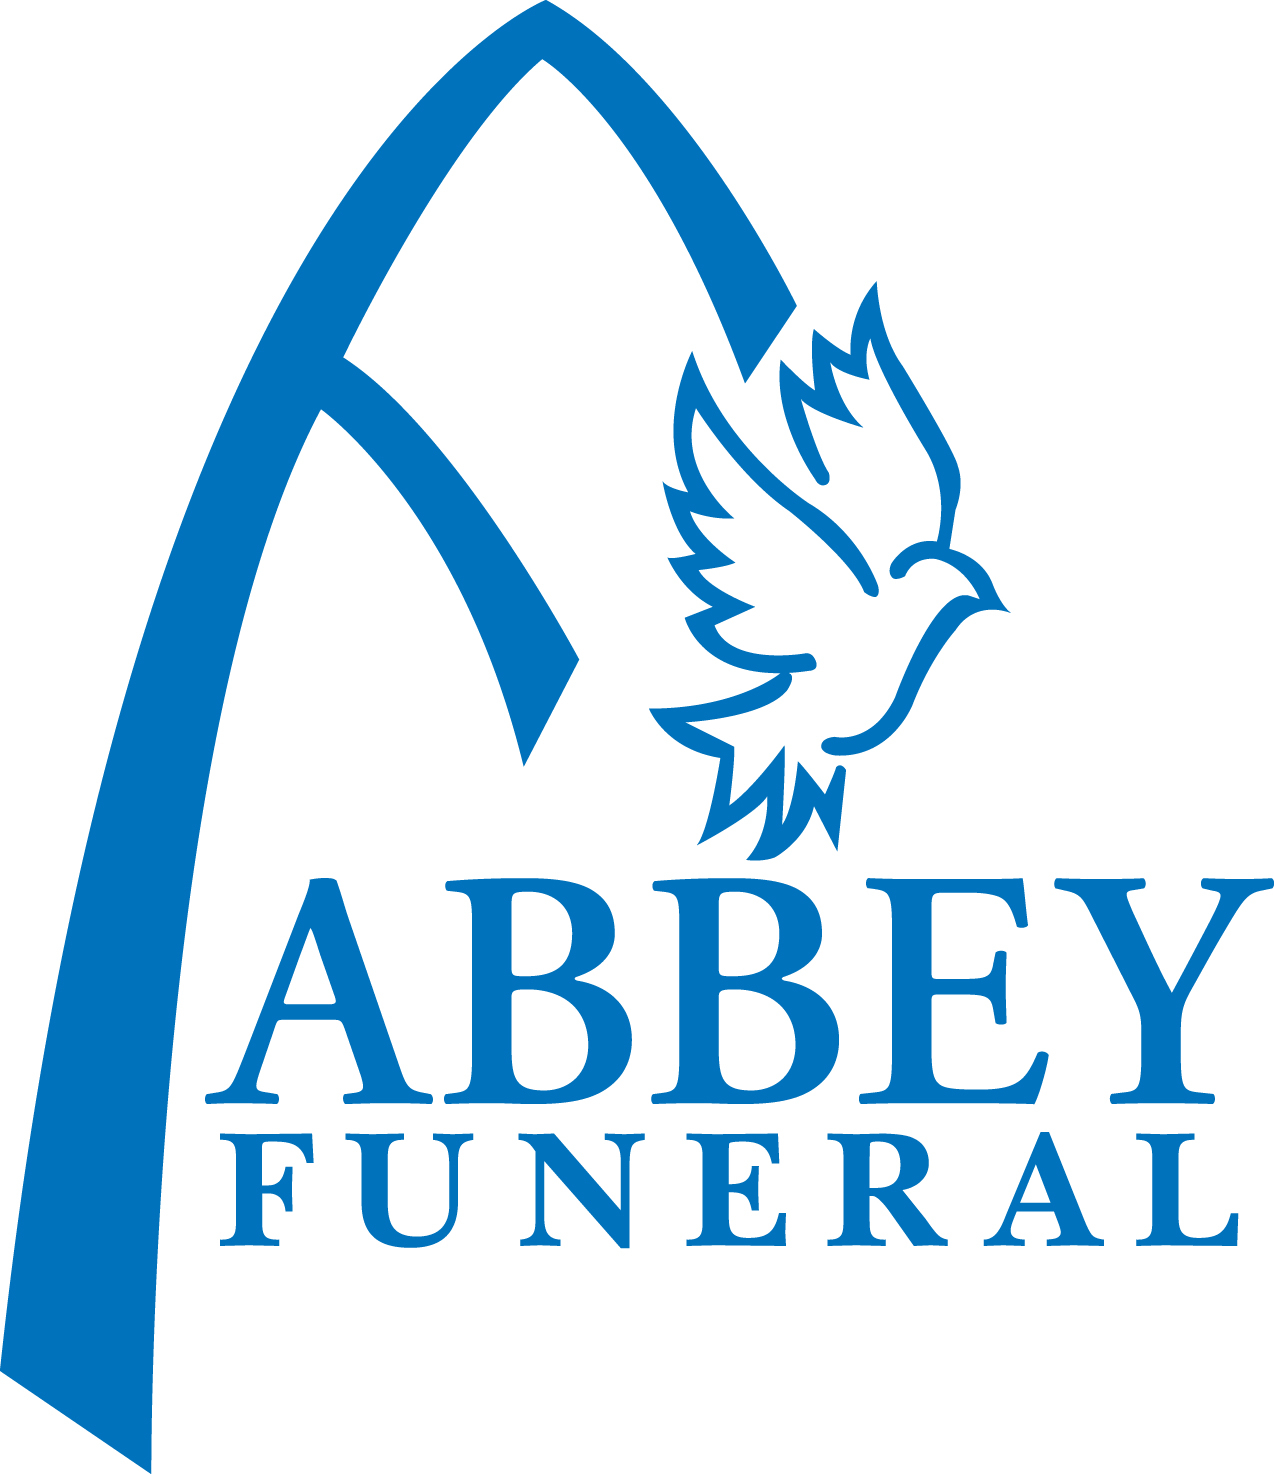 Abbey Funeral